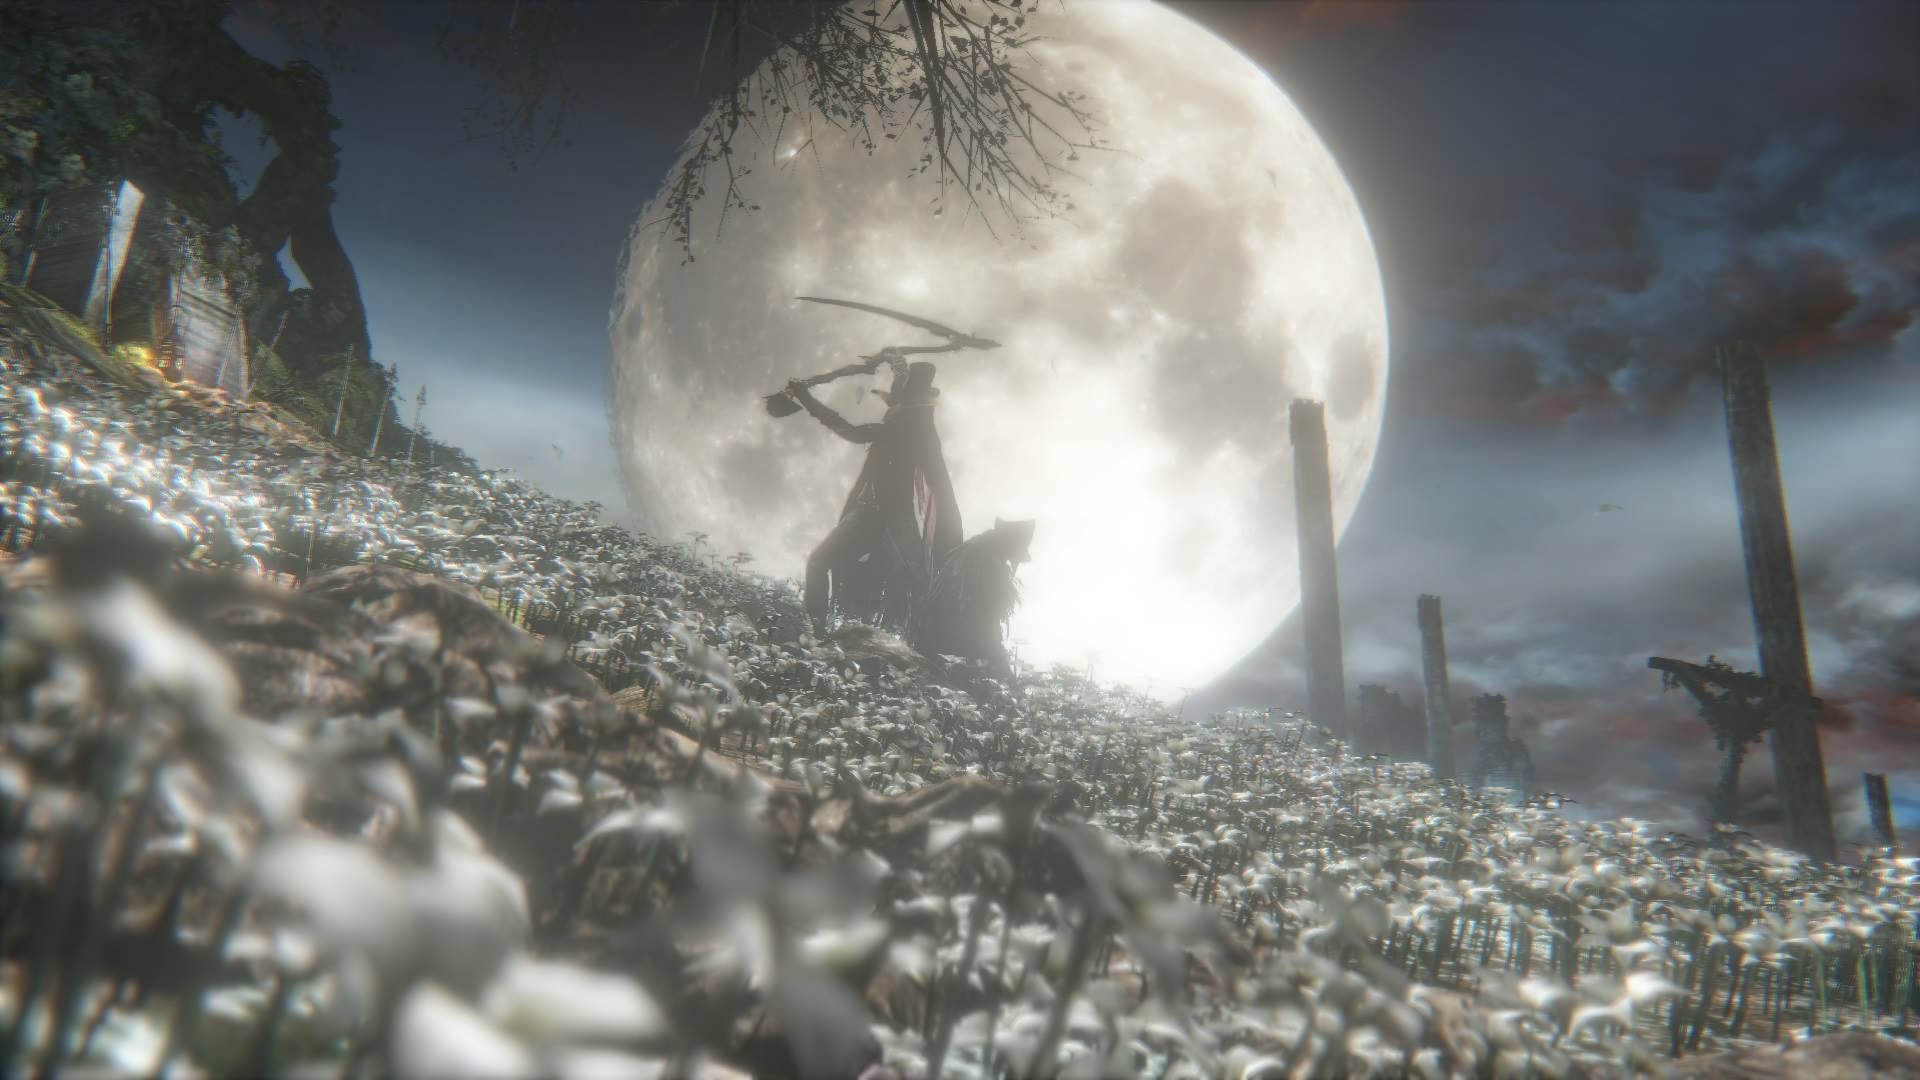 Gaming Wallpaper Iphone X Bloodborne Wallpaper 183 ① Download Free Cool High Resolution